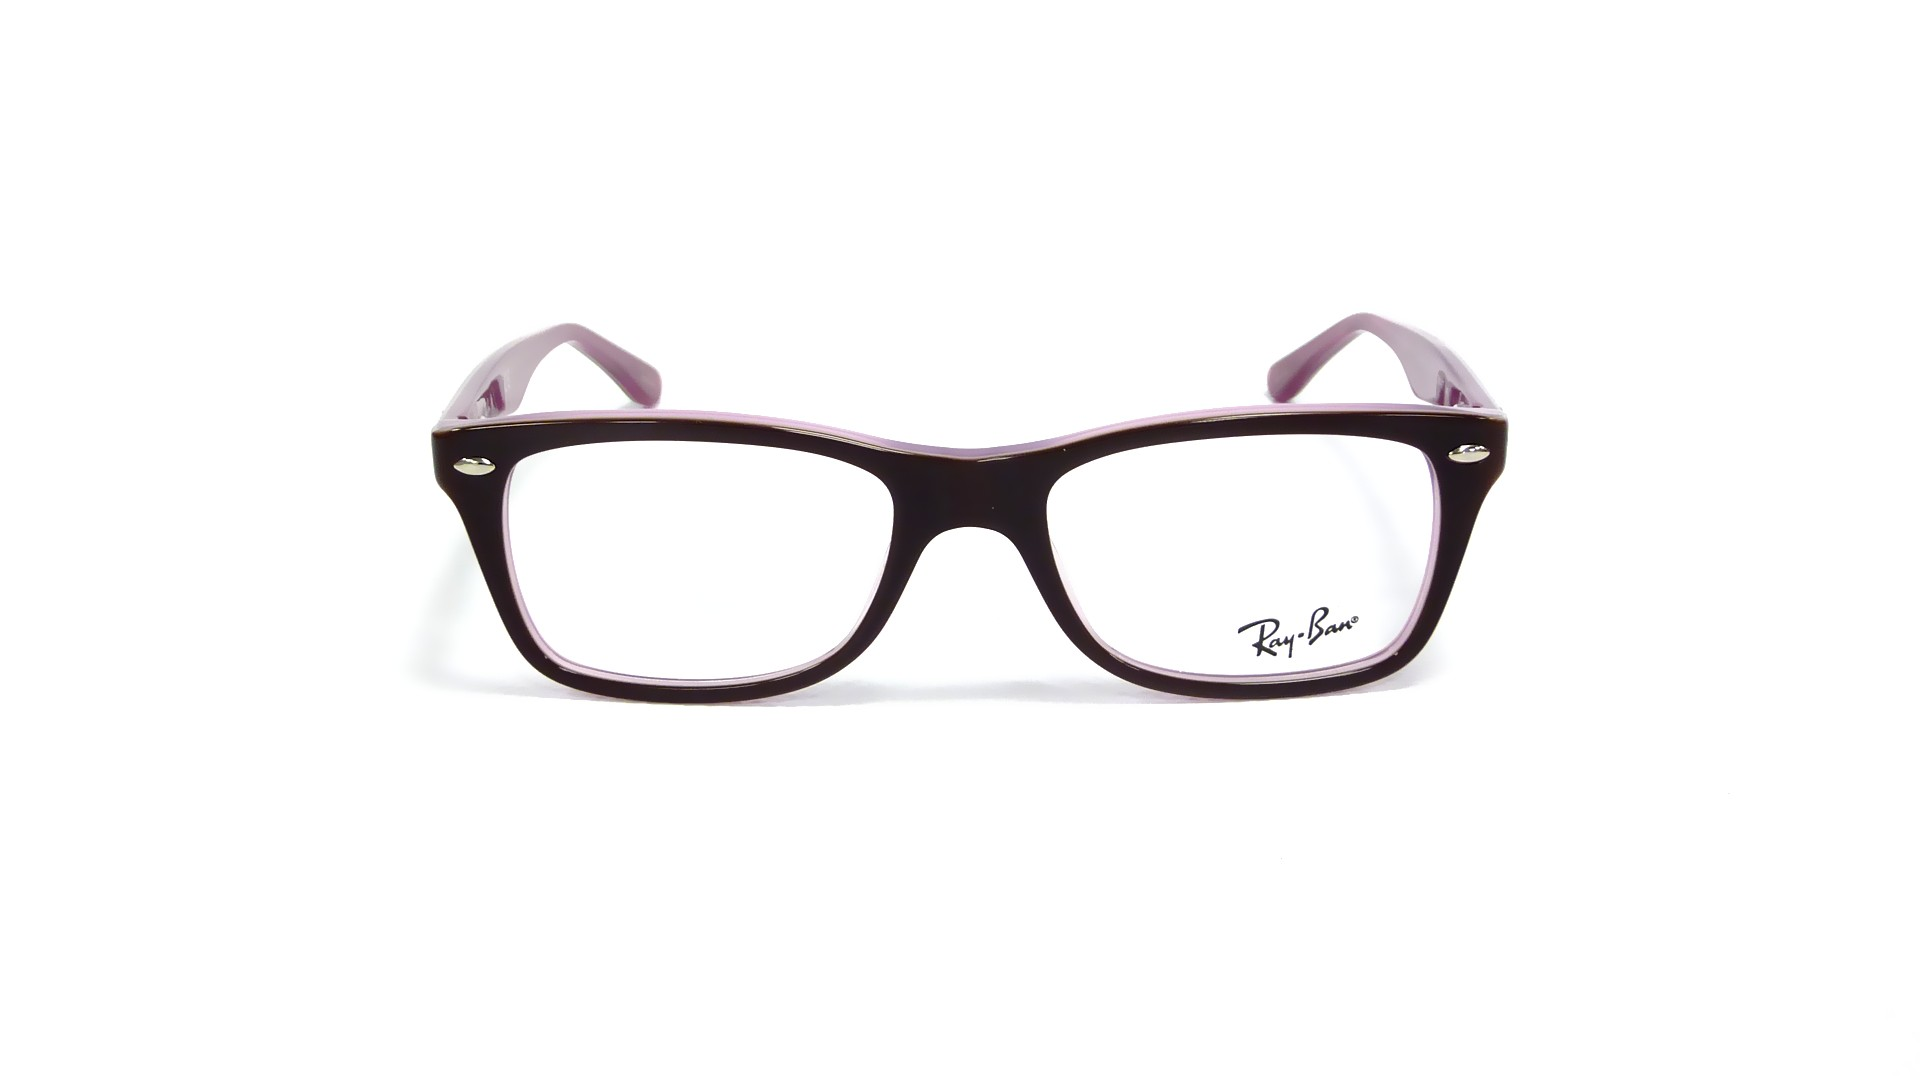 ab01eaa0c67bf Eyeglasses Ray-Ban RX5228 RB5228 2126 53-17 Black Medium